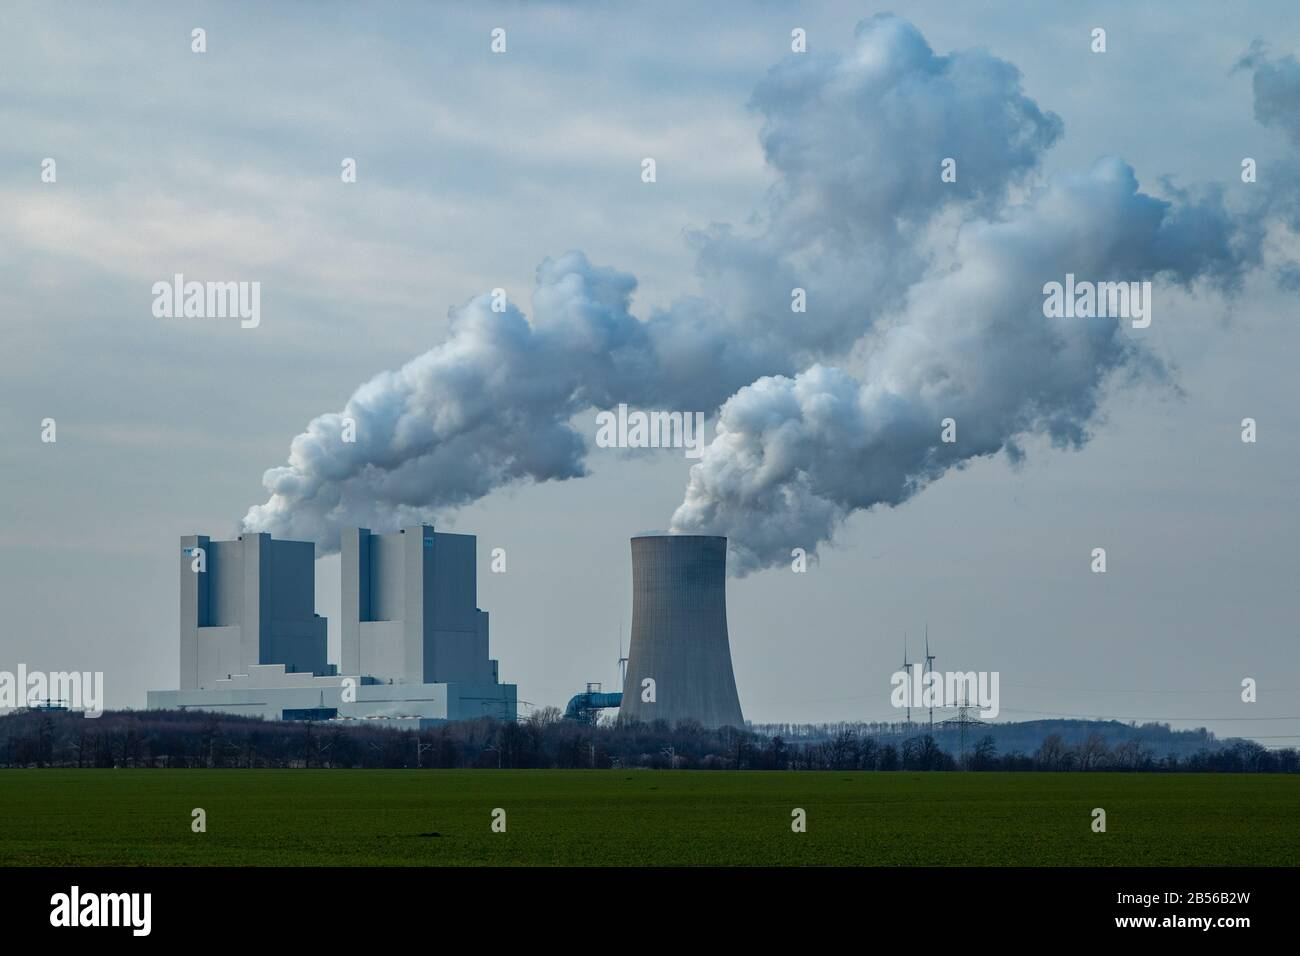 Rommerskirchen NRW, Germany, 07 03 2020, RWE coal fired power plangt Neurath, chimney with exhaust gases, cloudy sky Stock Photo